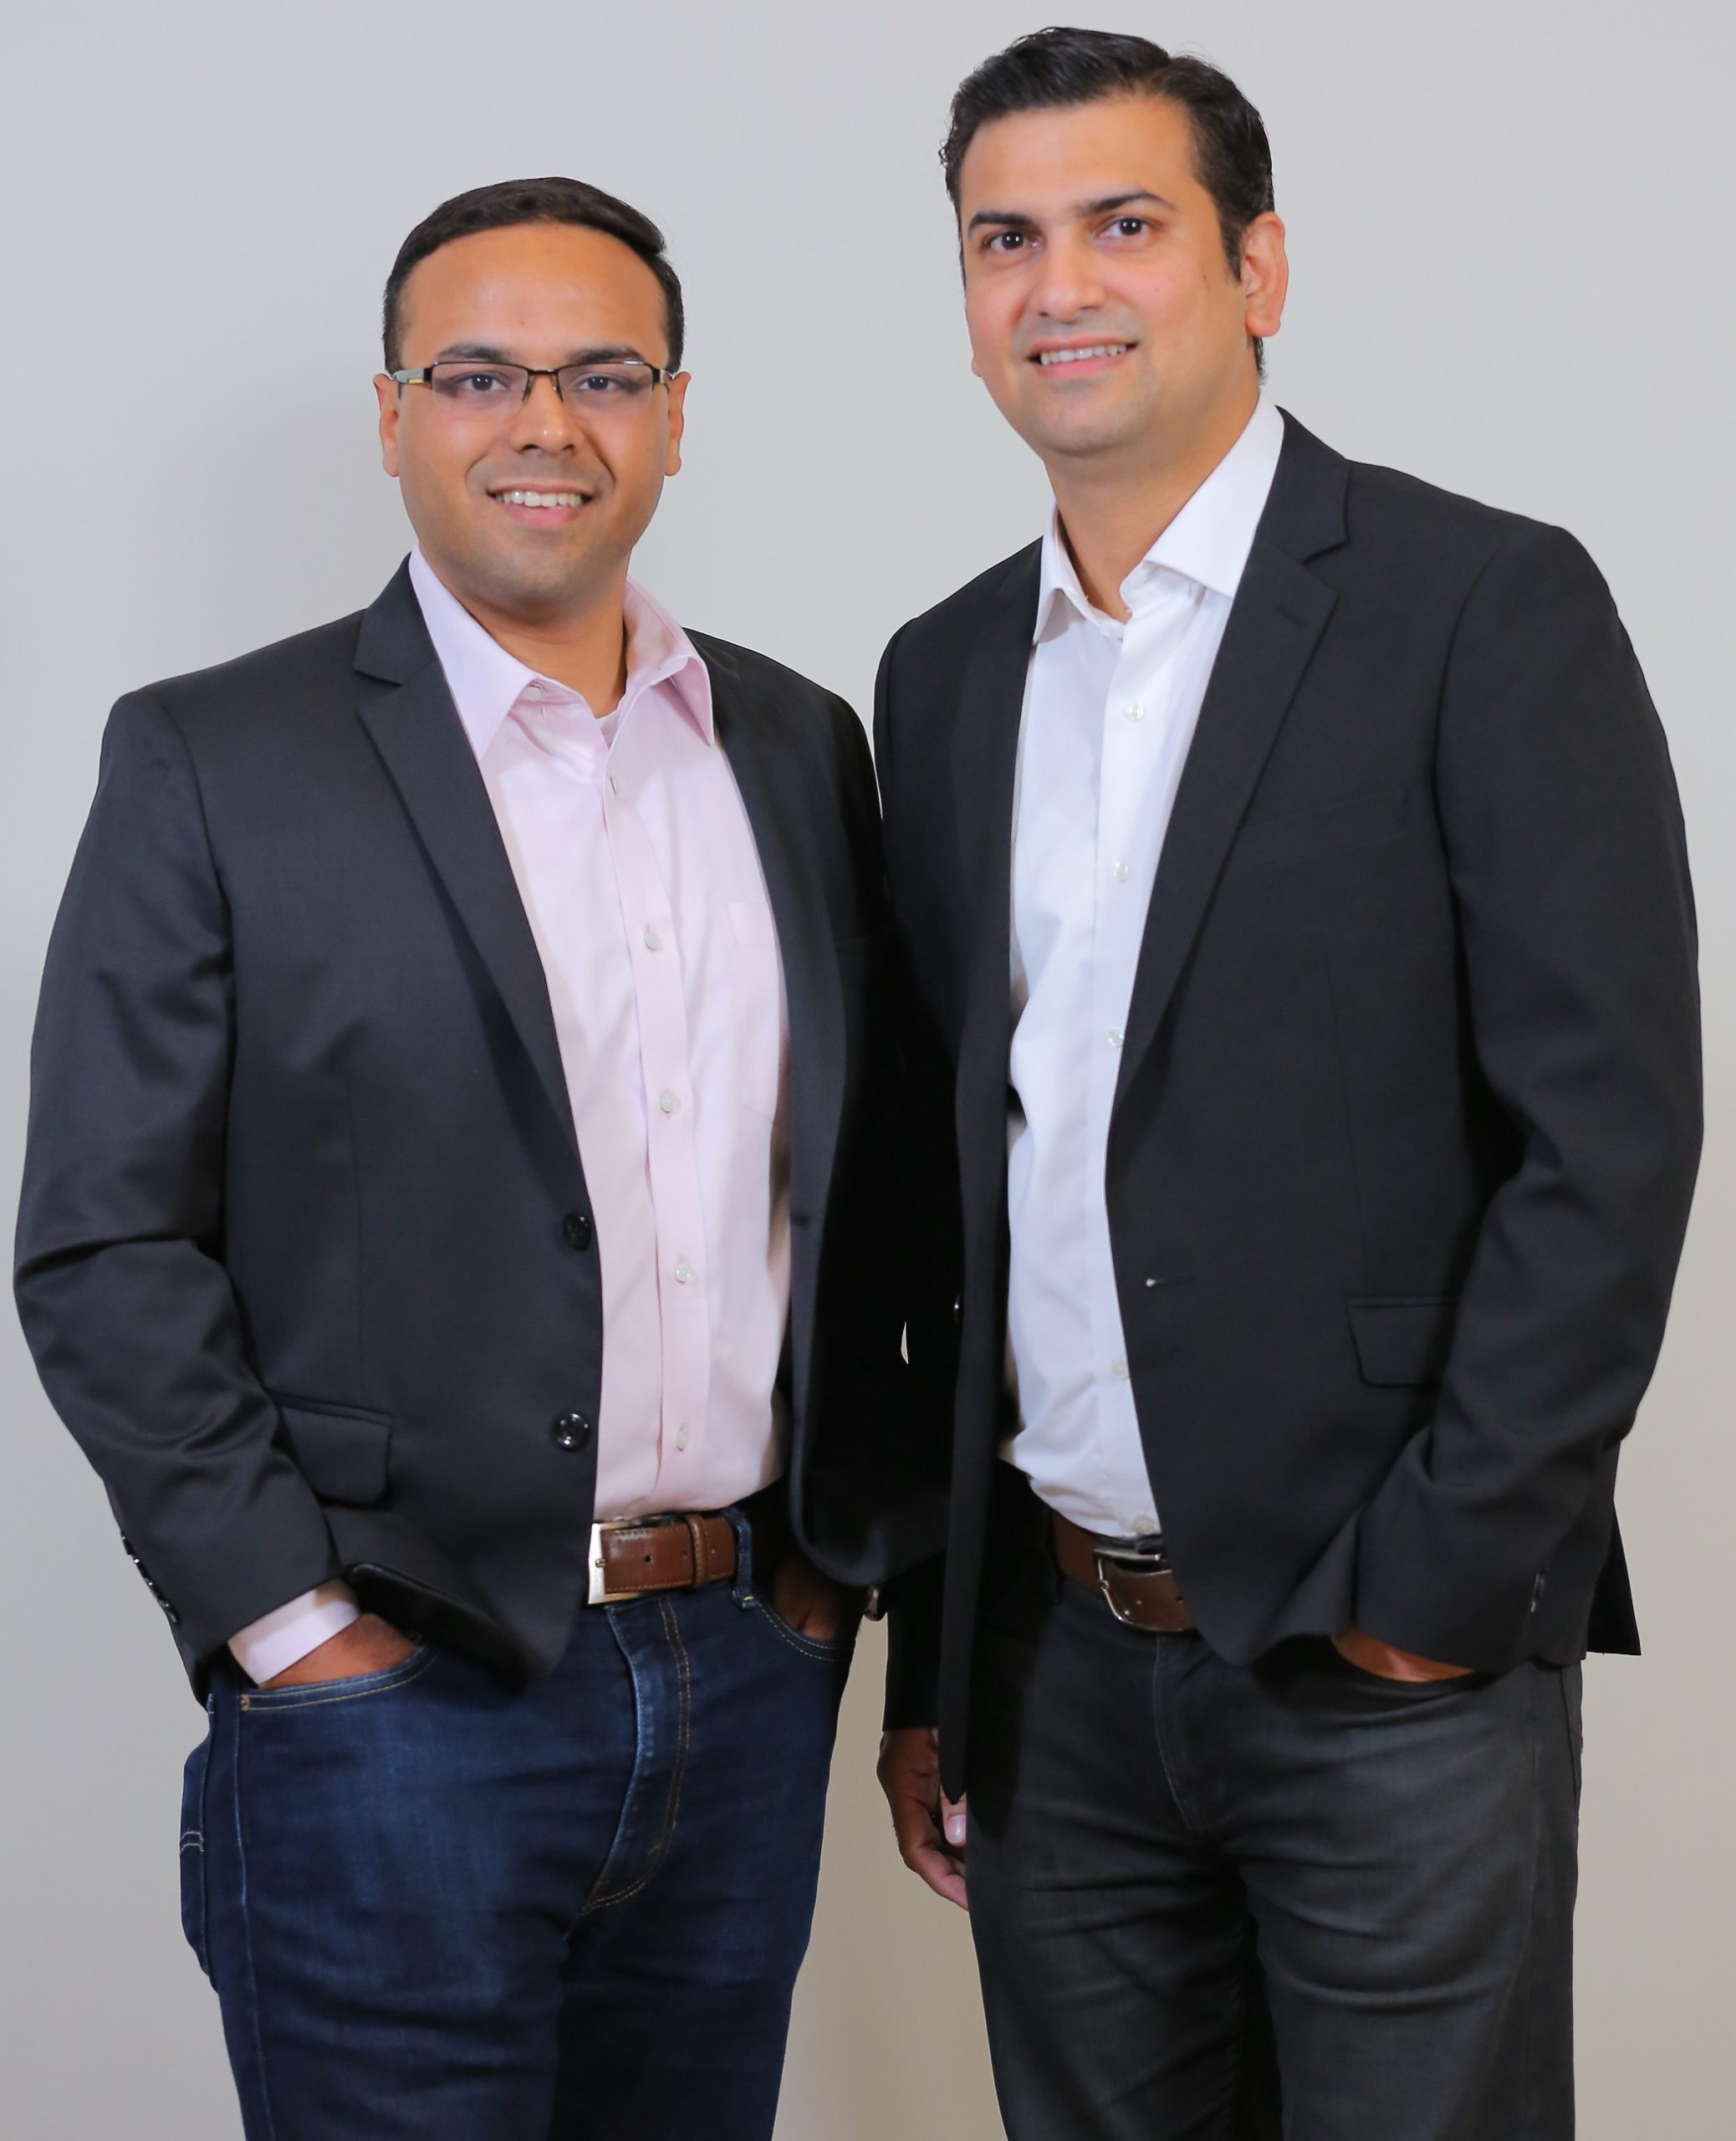 Co-founders Umesh Sachdev (left) and Ravi Saraogi.